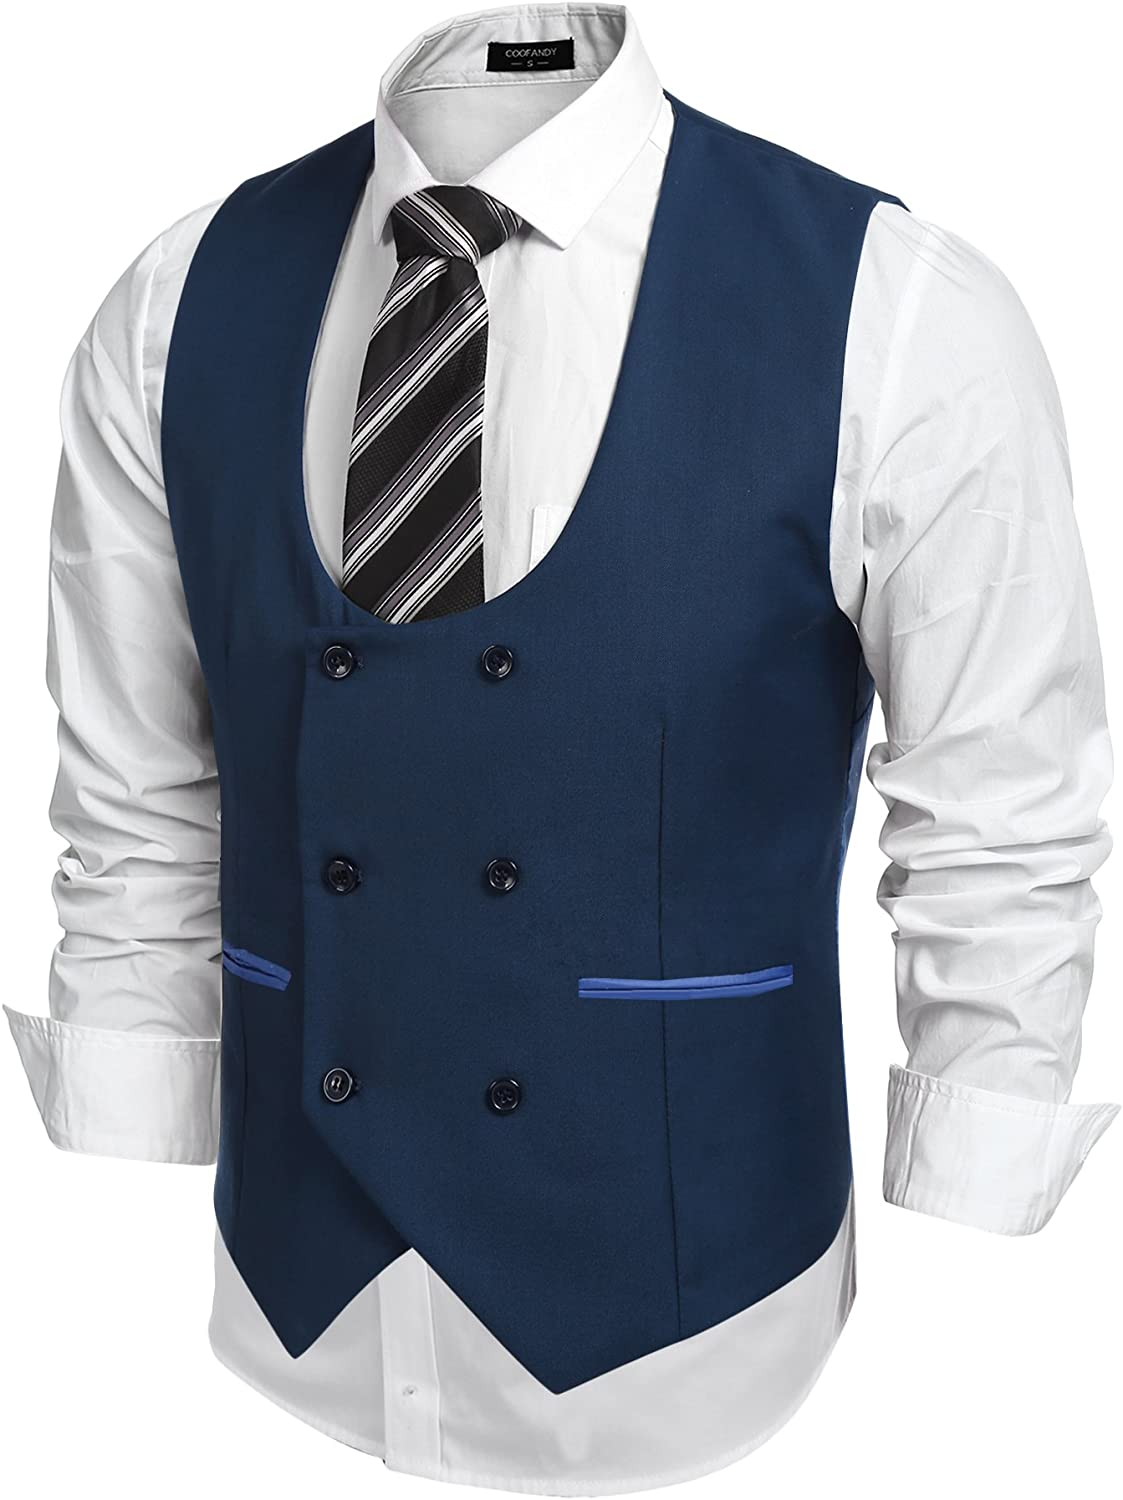 COOFANDY Mens Slim Fit Sleeveless Suit Vest Double Breasted Business Dress Waistcoat